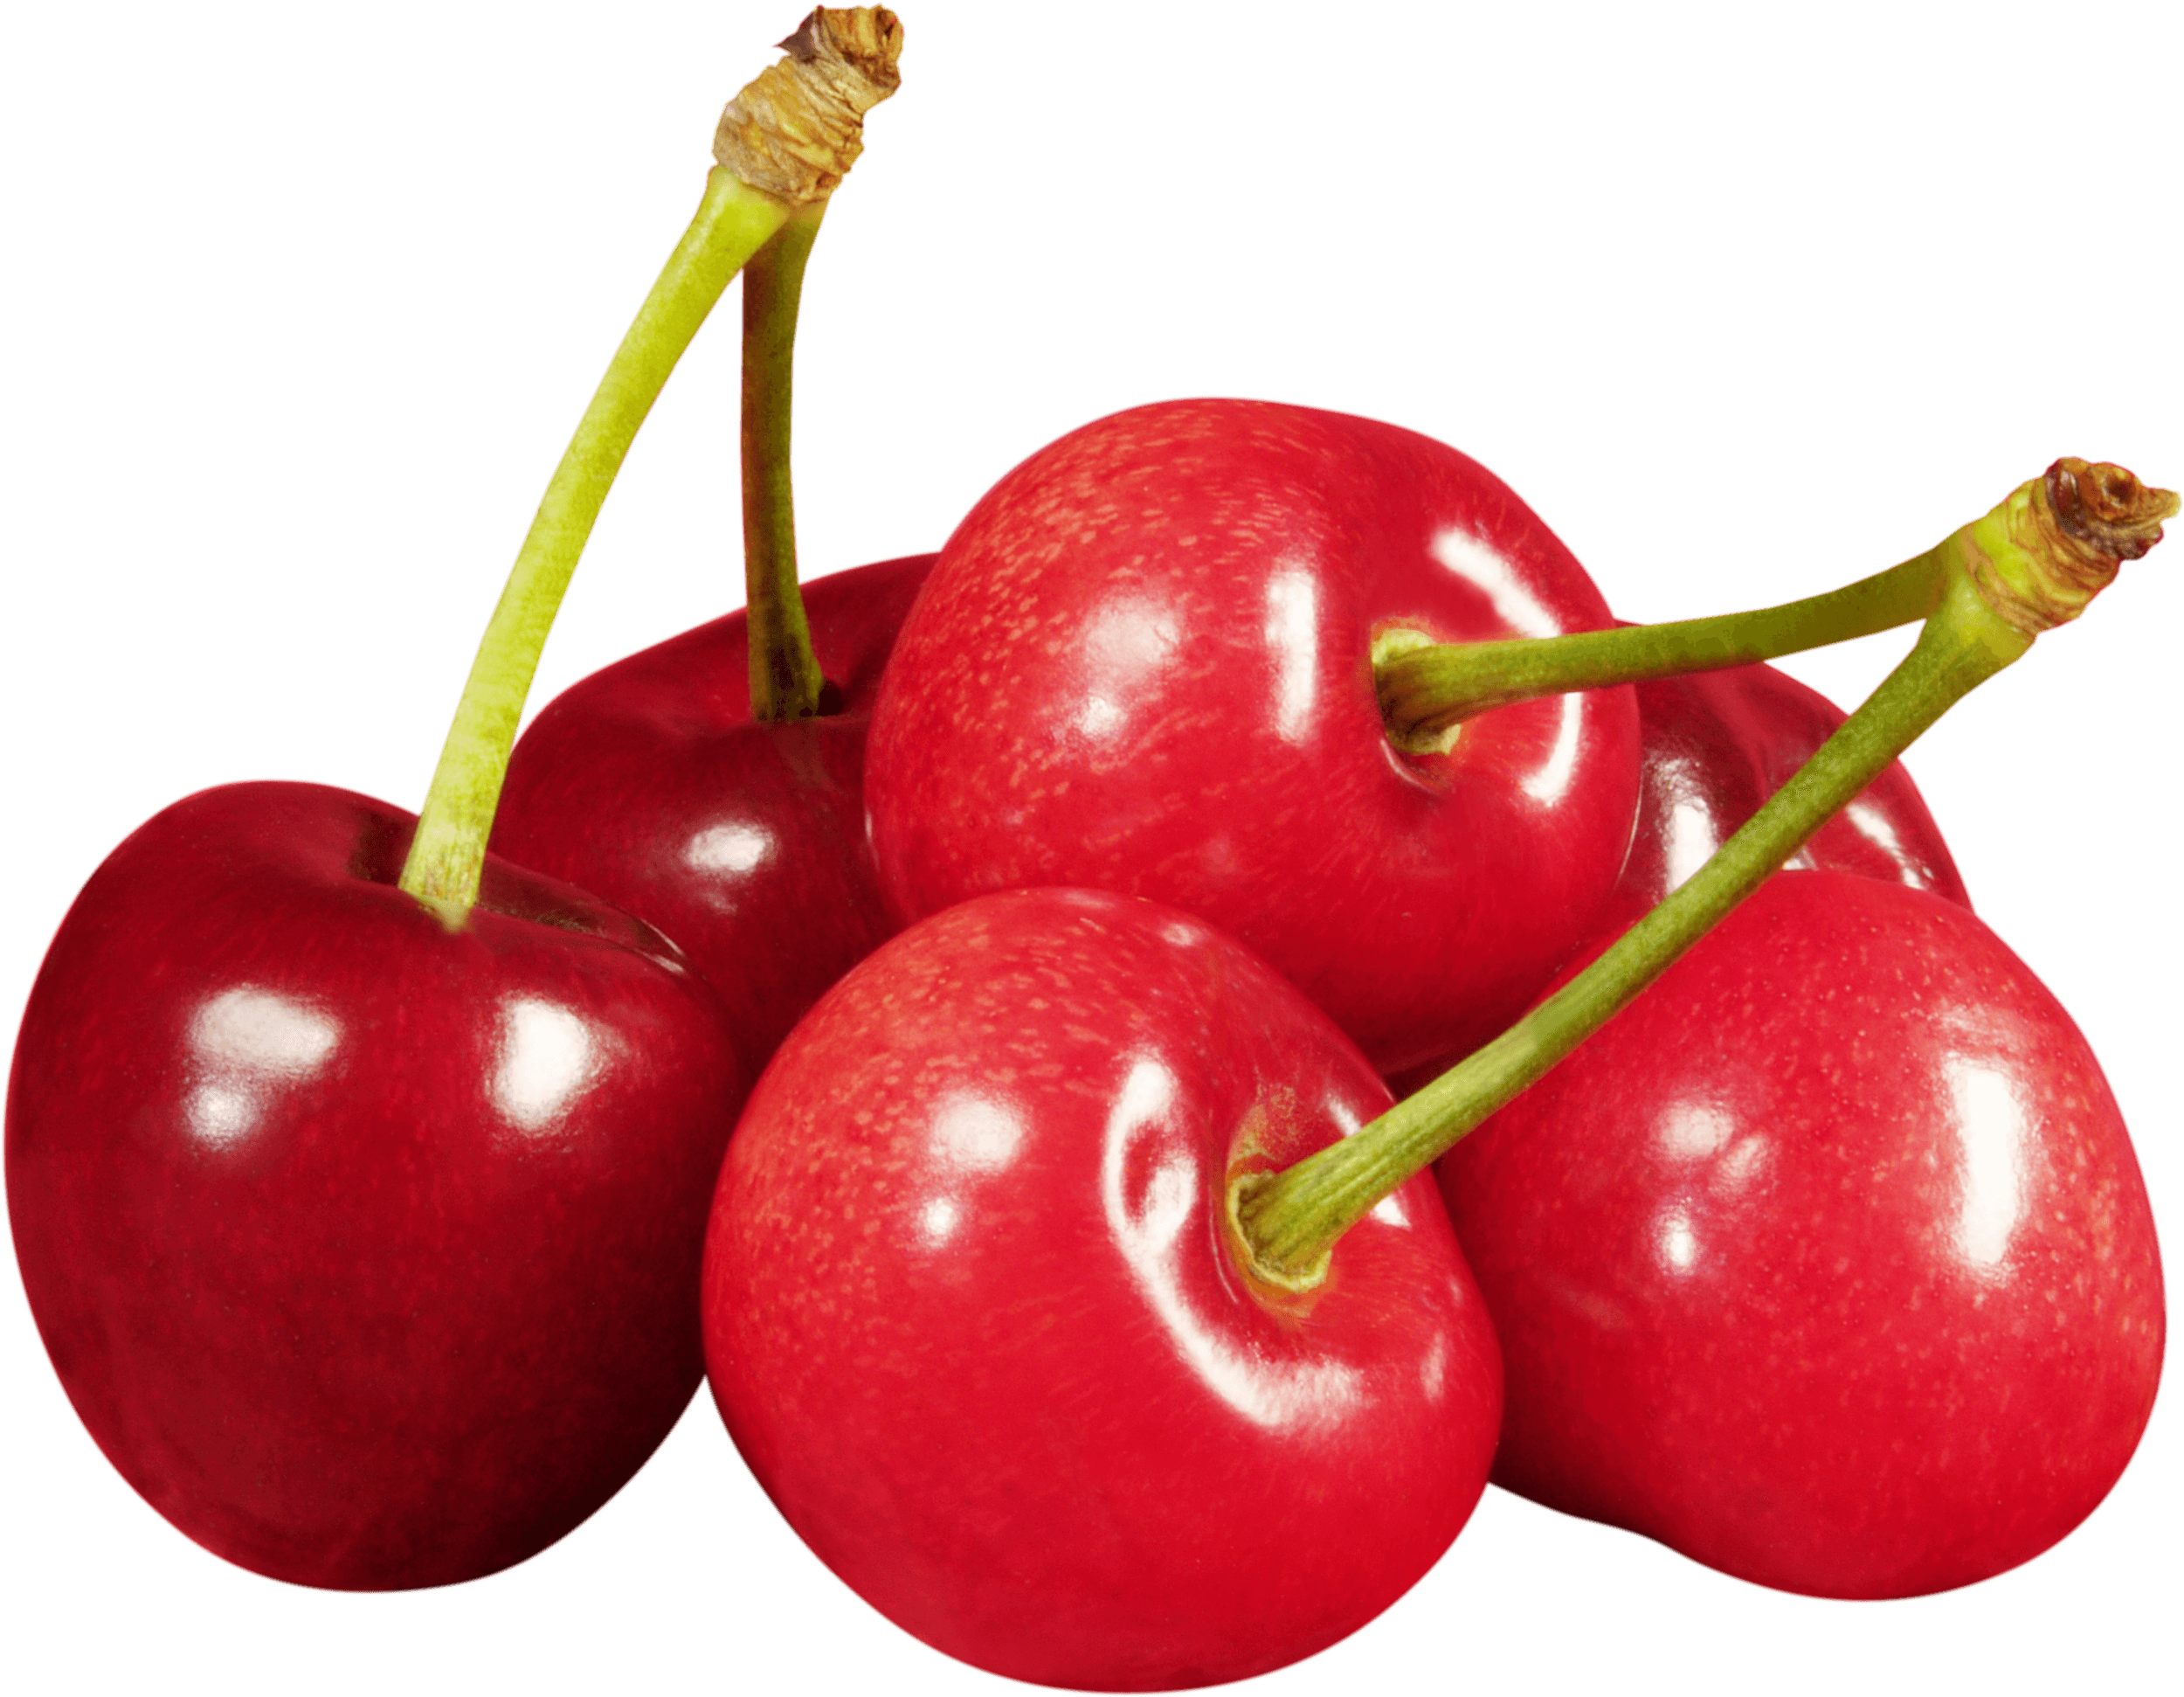 Cherry png. Group of cherries transparent